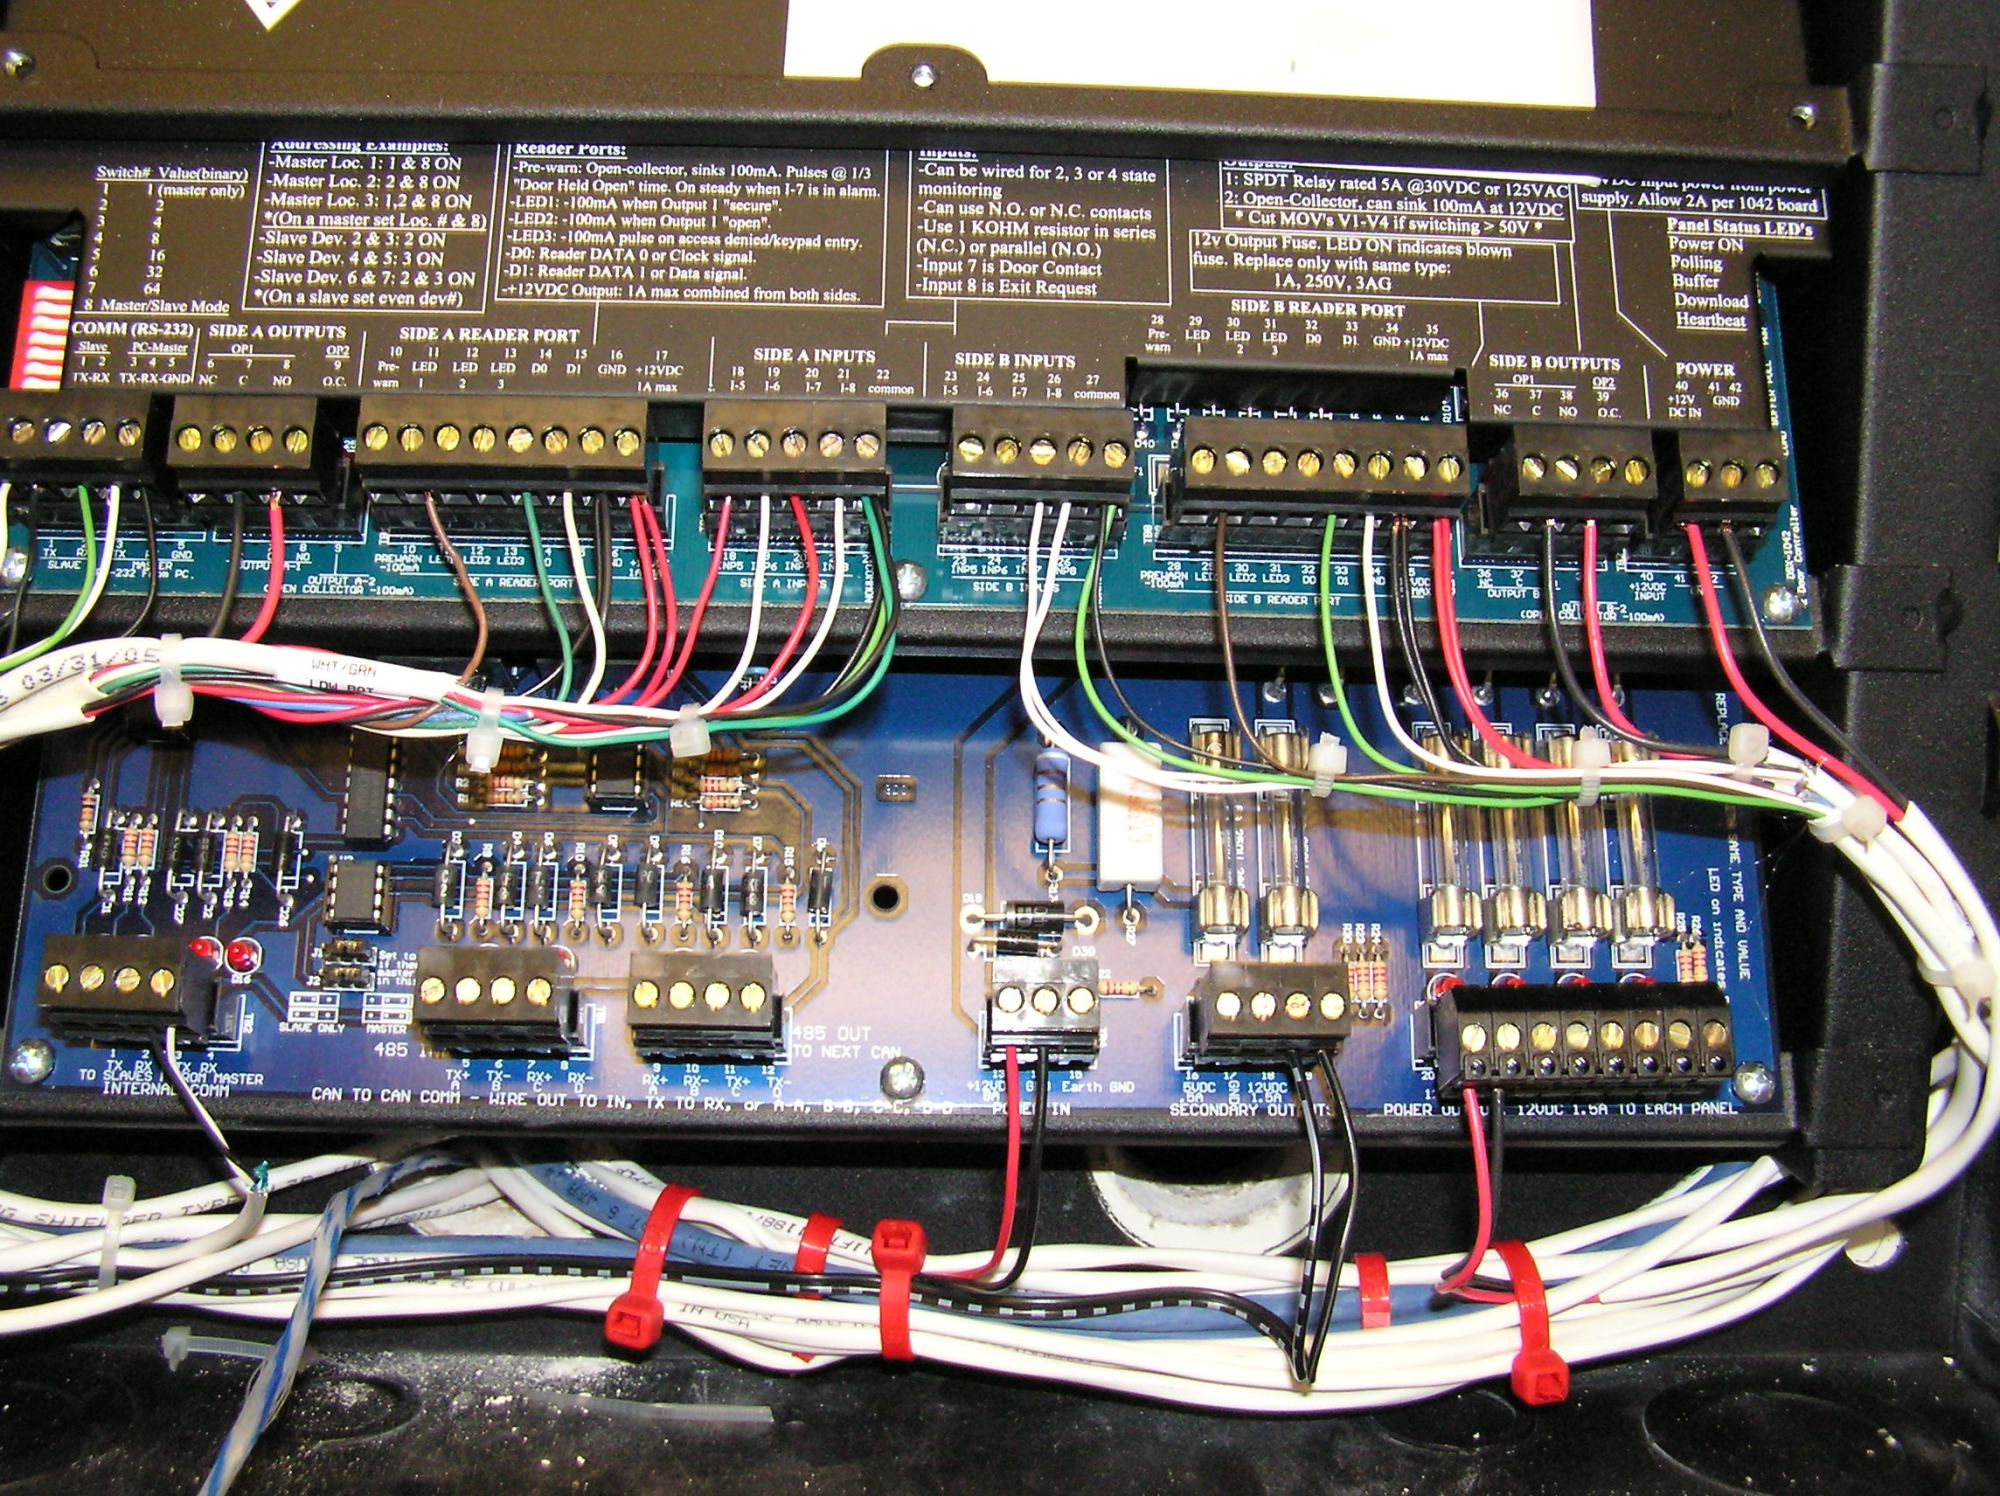 hight resolution of dsx panel wiring diagram wiring diagram centre dsx panel wiring diagram dsx panel wiring diagram